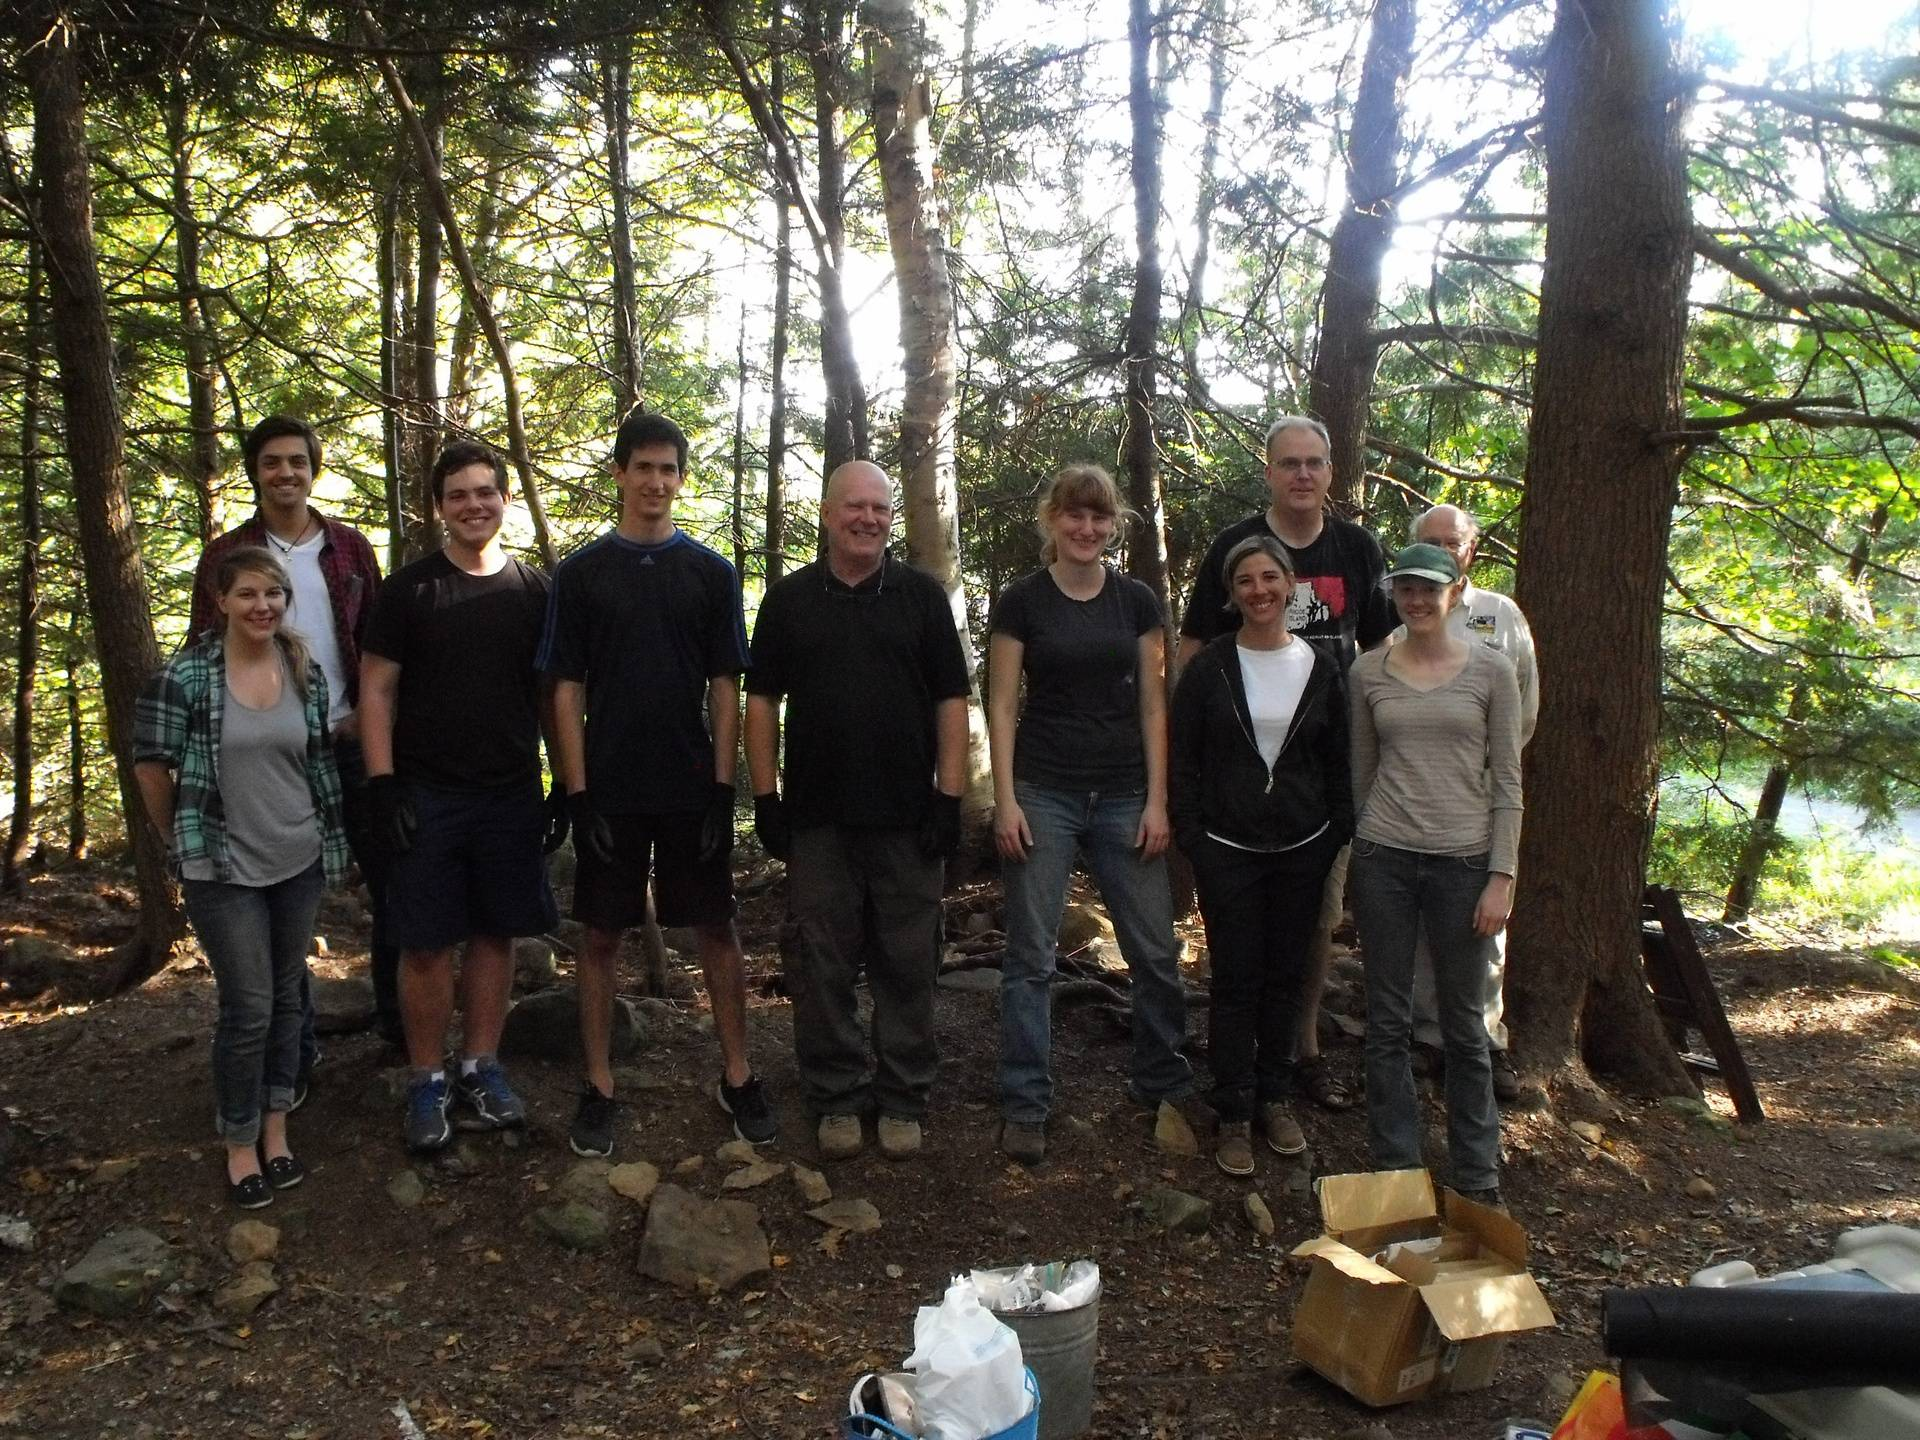 Our afternoon dig crew, minus a few early departures.